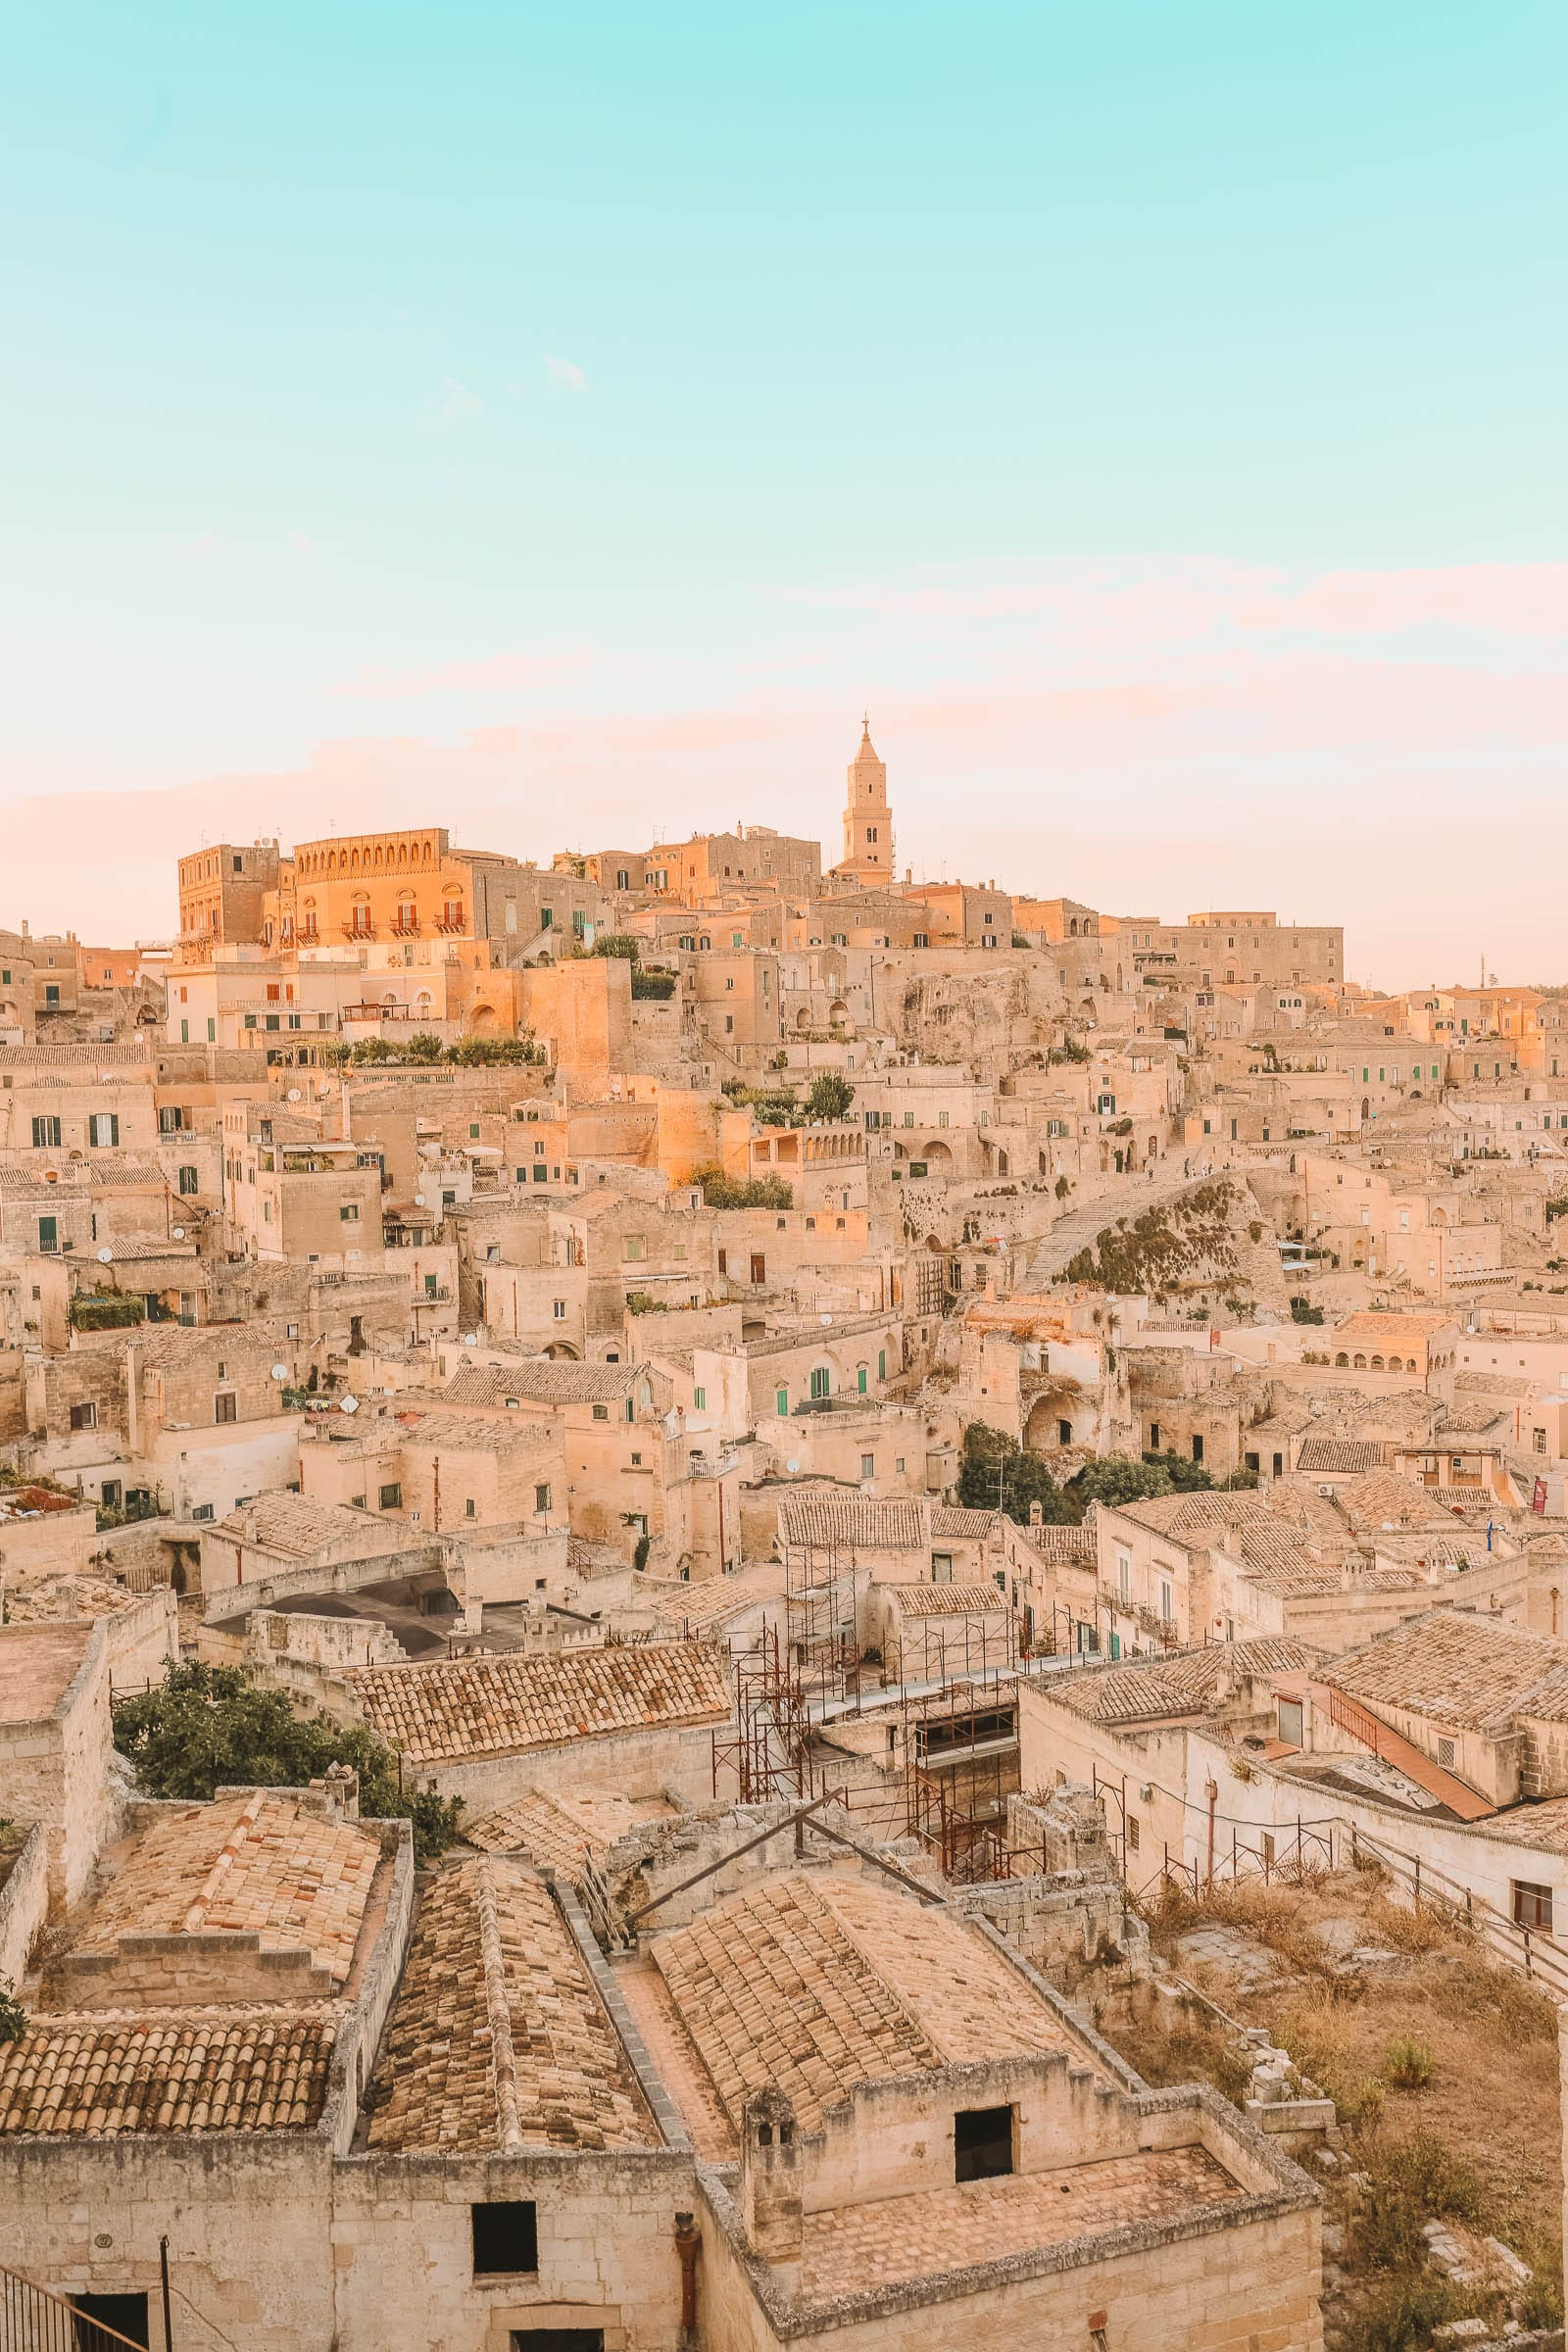 10 Best Things To Do In Matera, Italy